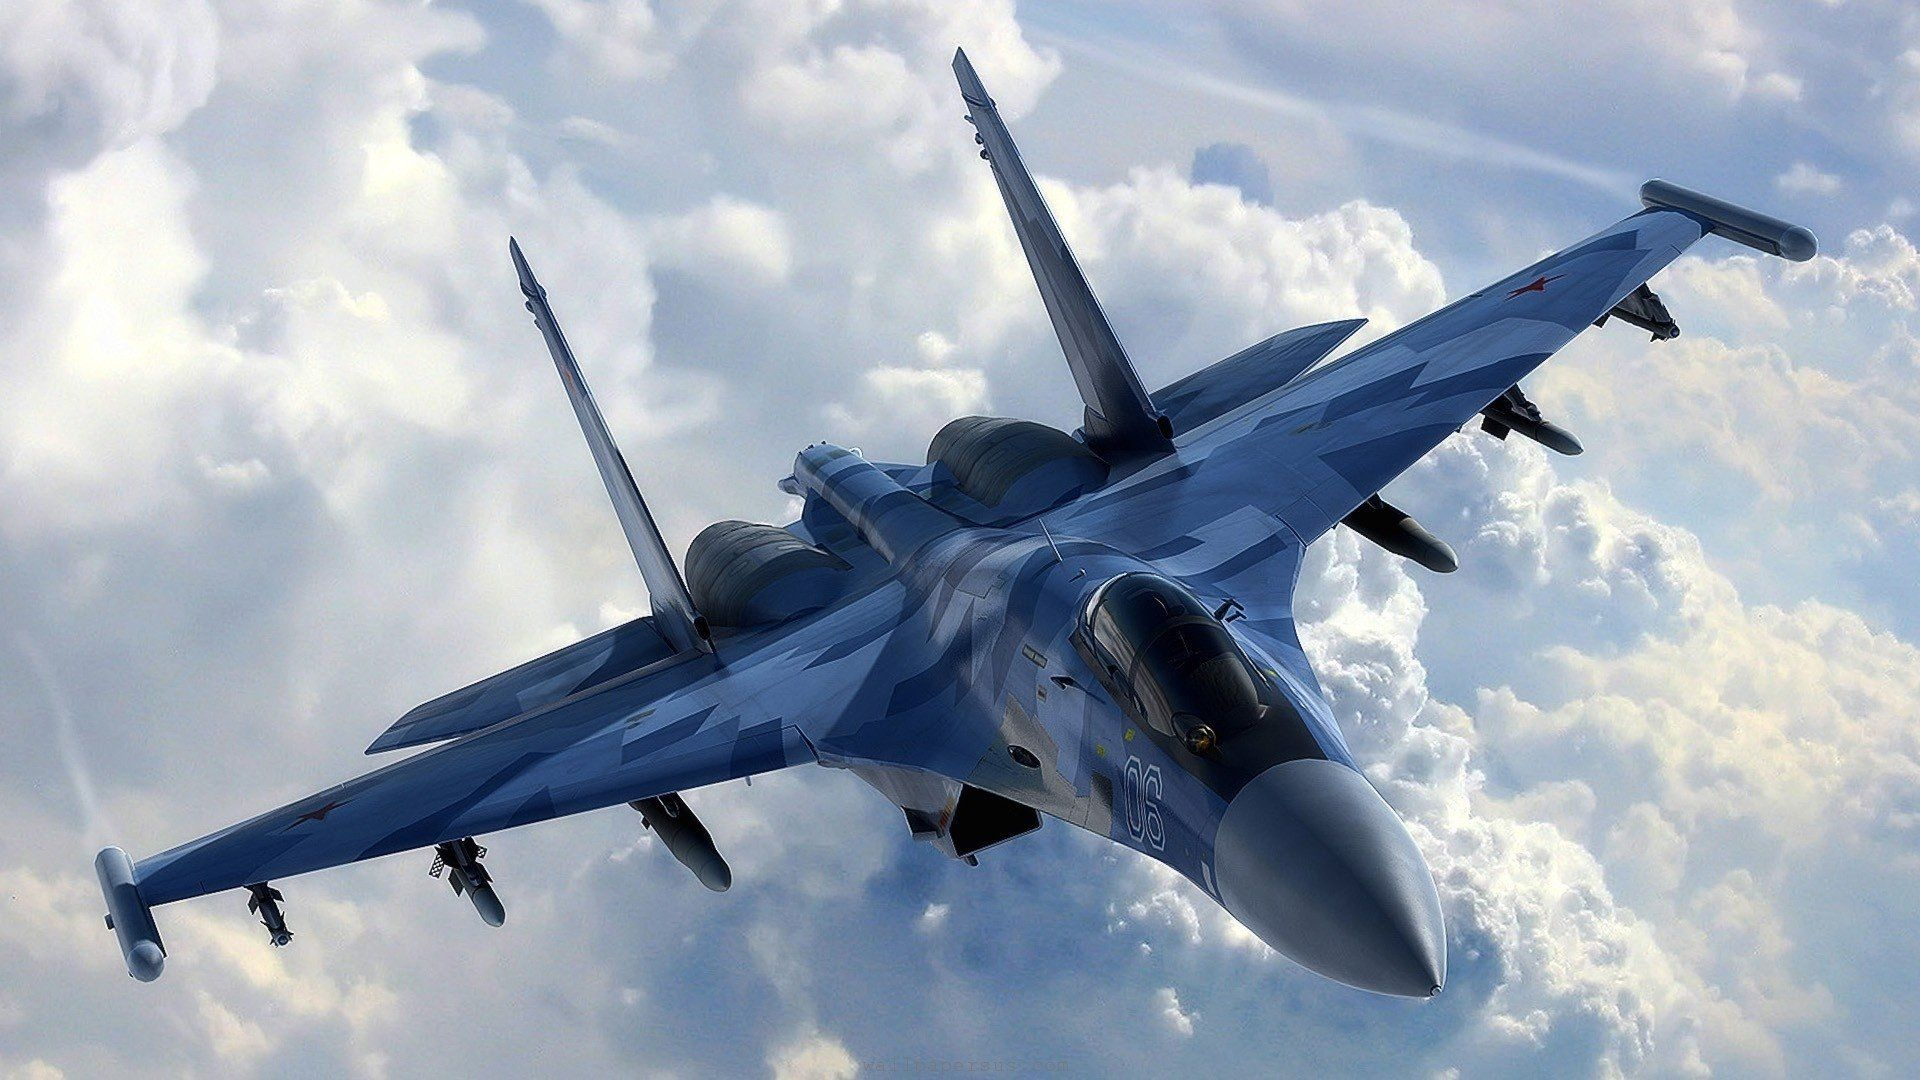 38 Sukhoi Su 35 Hd Wallpapers Backgrounds Wallpaper Abyss Fighter Jets Russian Fighter Jets Sukhoi